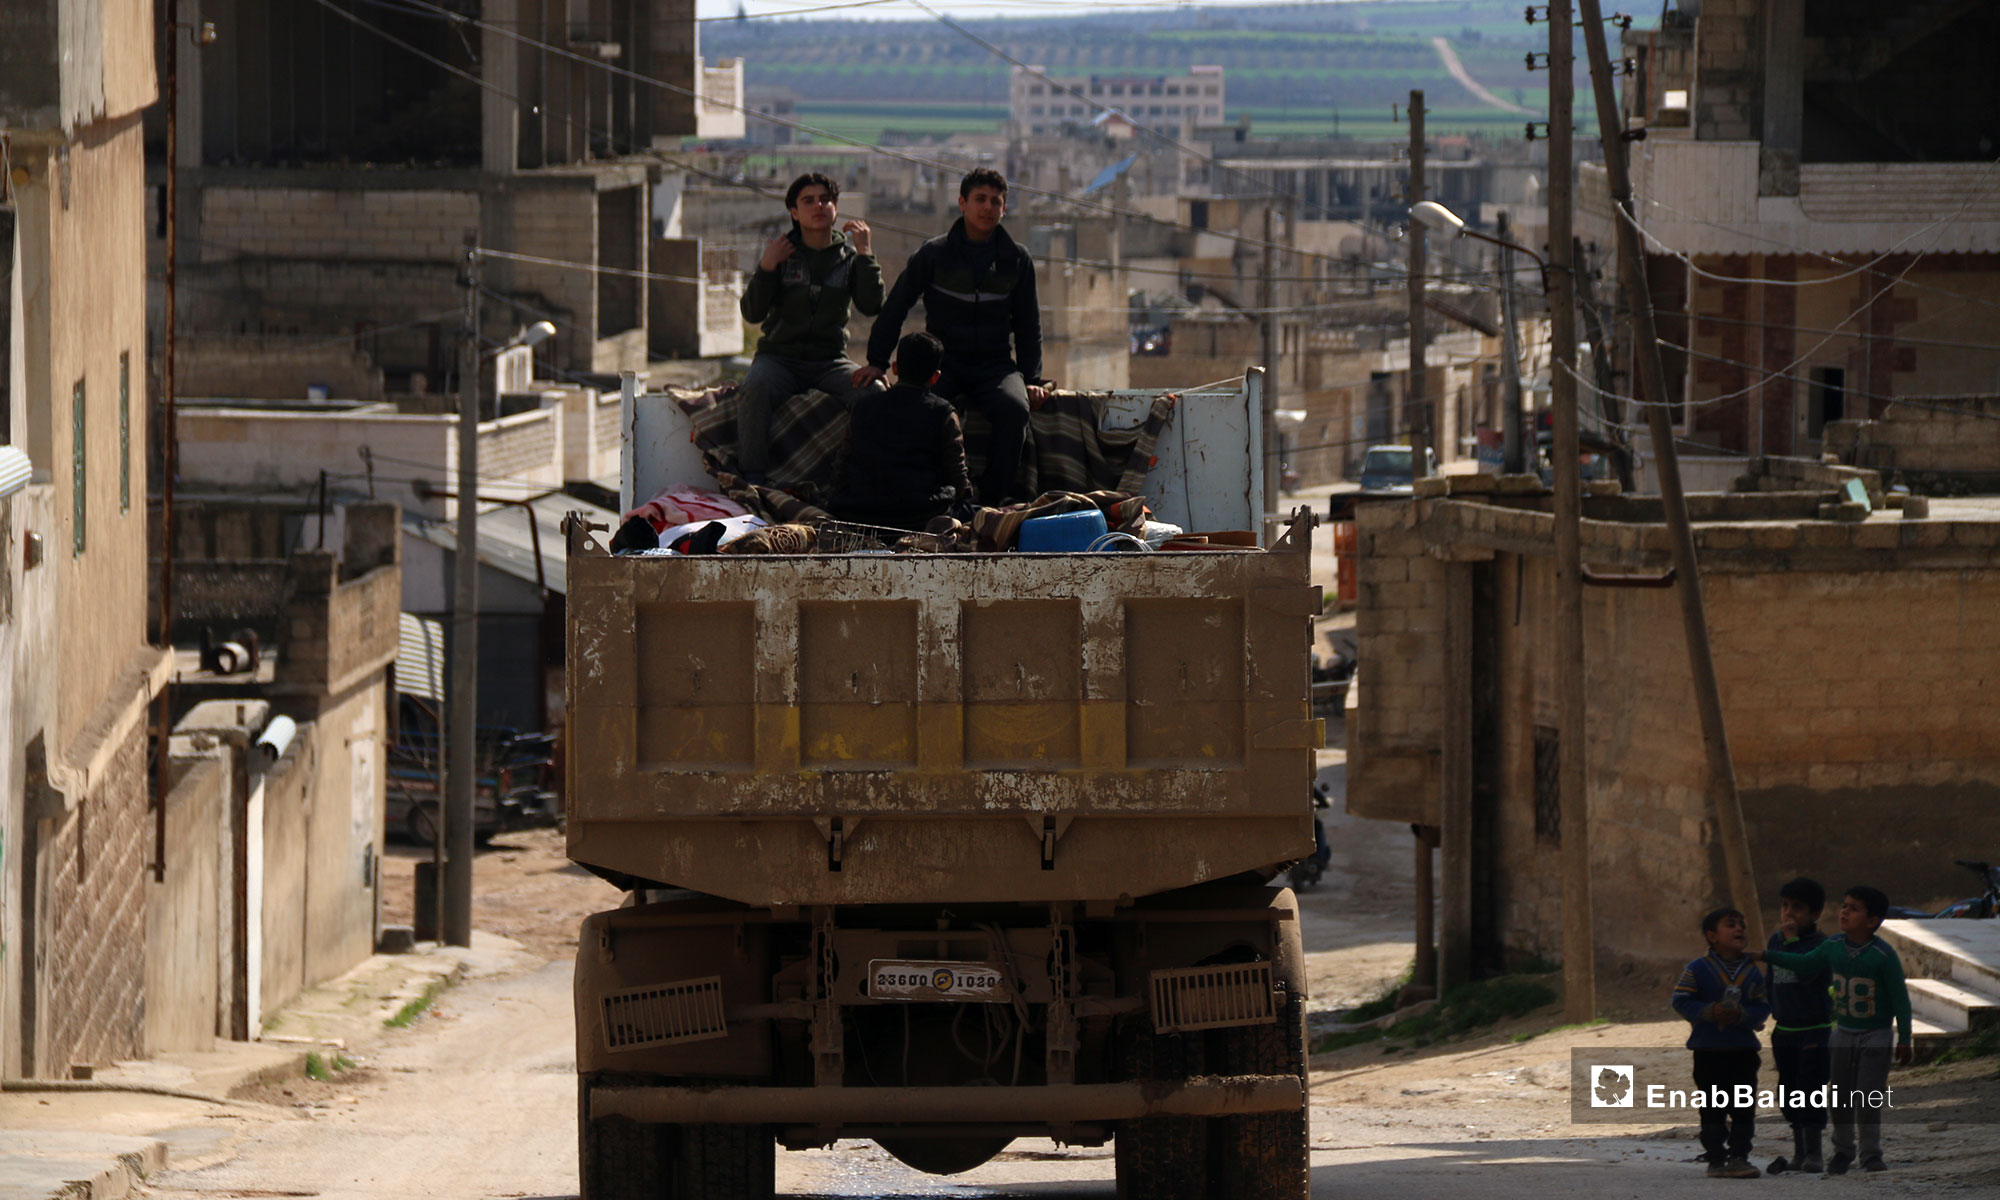 The displacement of the residents of the city of Shaykhun city, Idlib – March 3, 2019 (Enab Baladi)